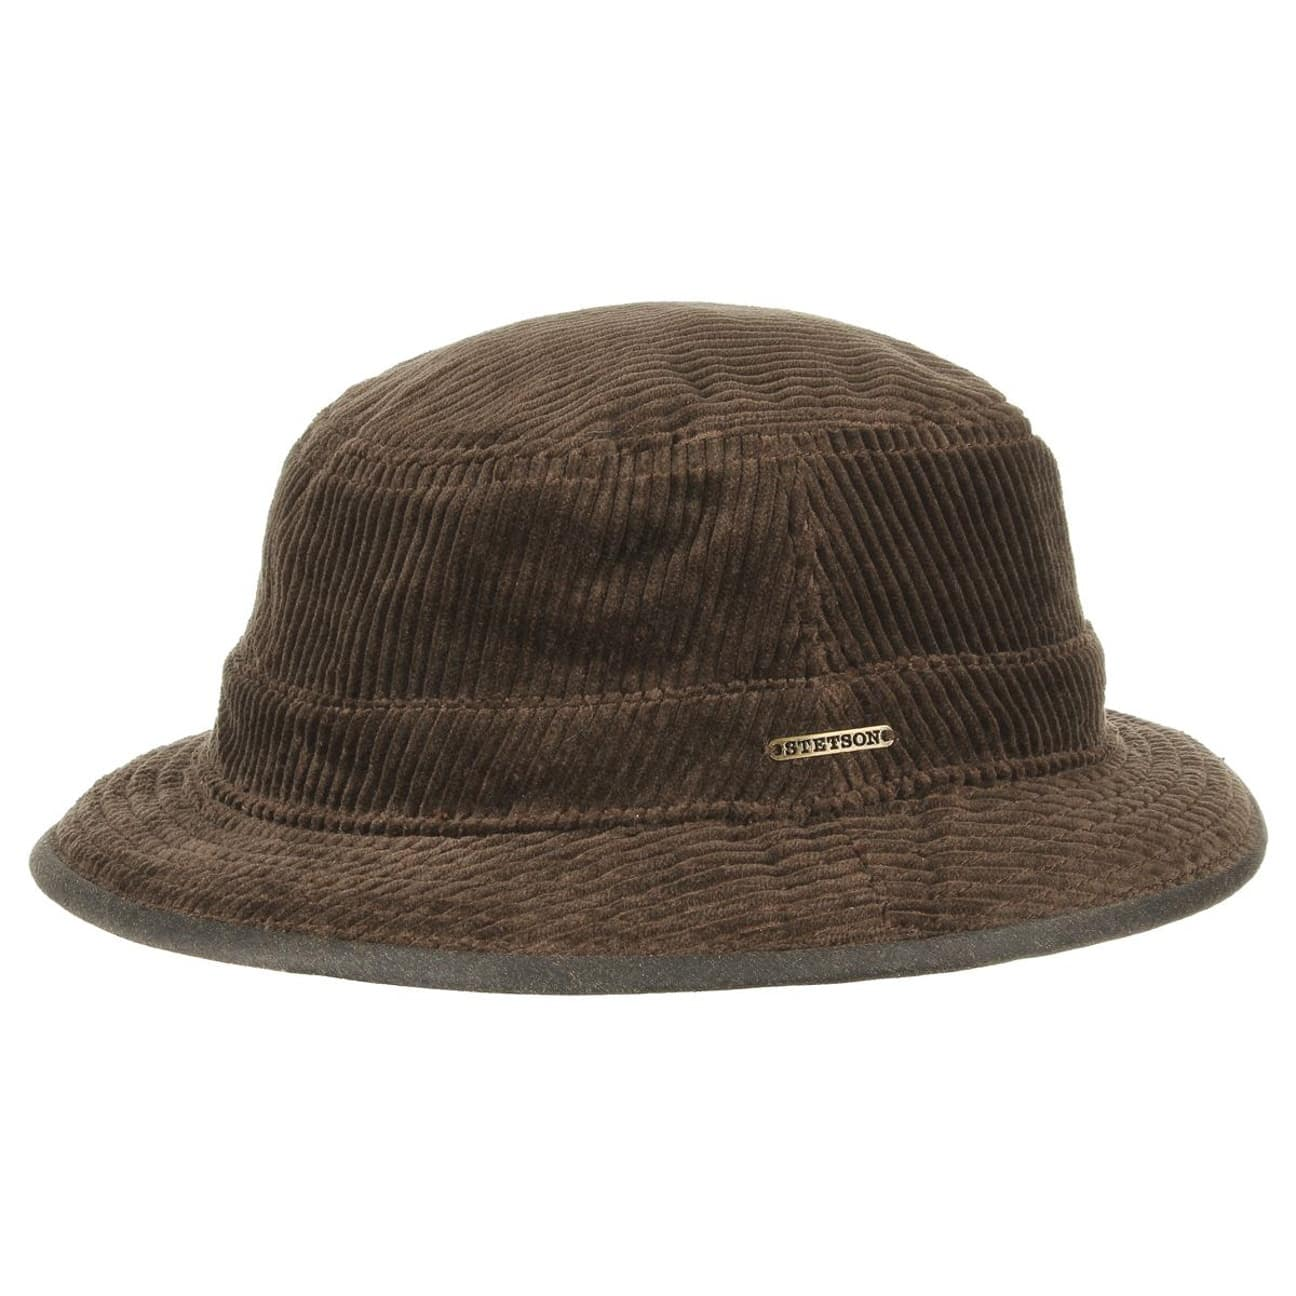 Anselmo Corduroy Bucket Hat by Stetson - brown 1 ... 32af1fd3812